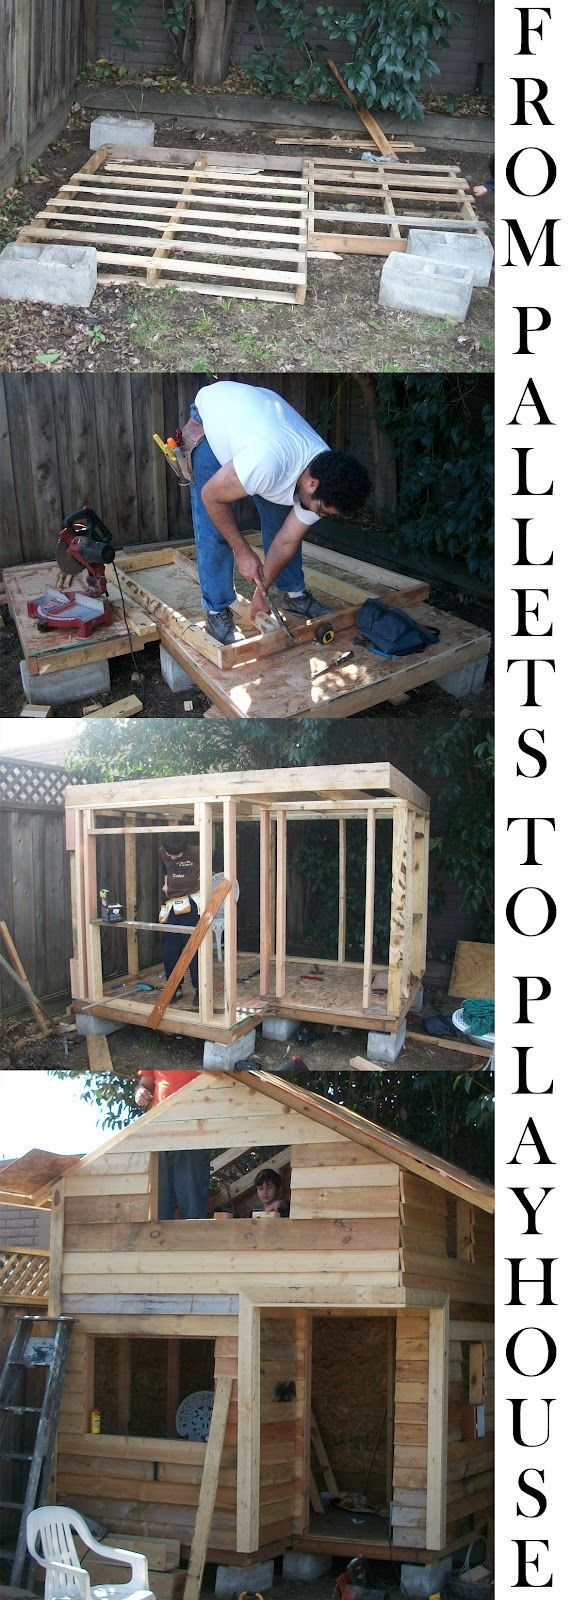 Another Pallet Playhouse on cinder blocks